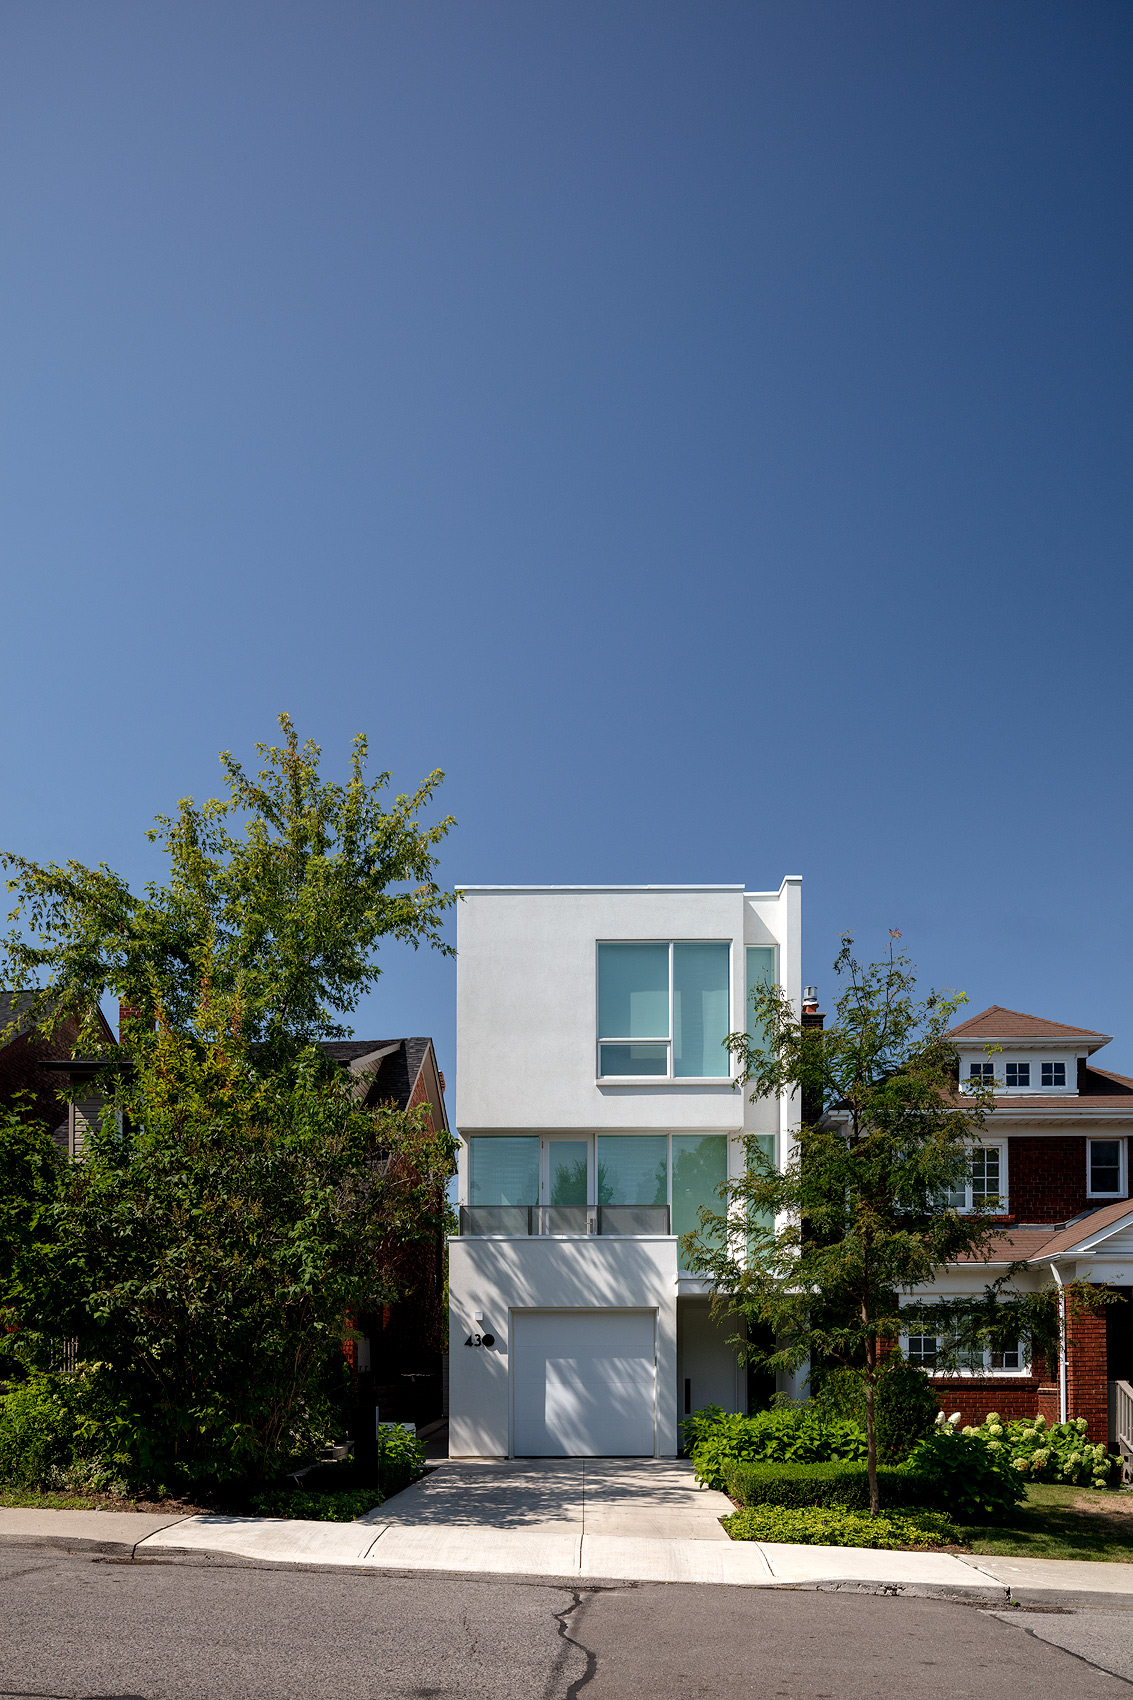 Exterior of a modern house, Peter A. Sellar Architectural Photographer